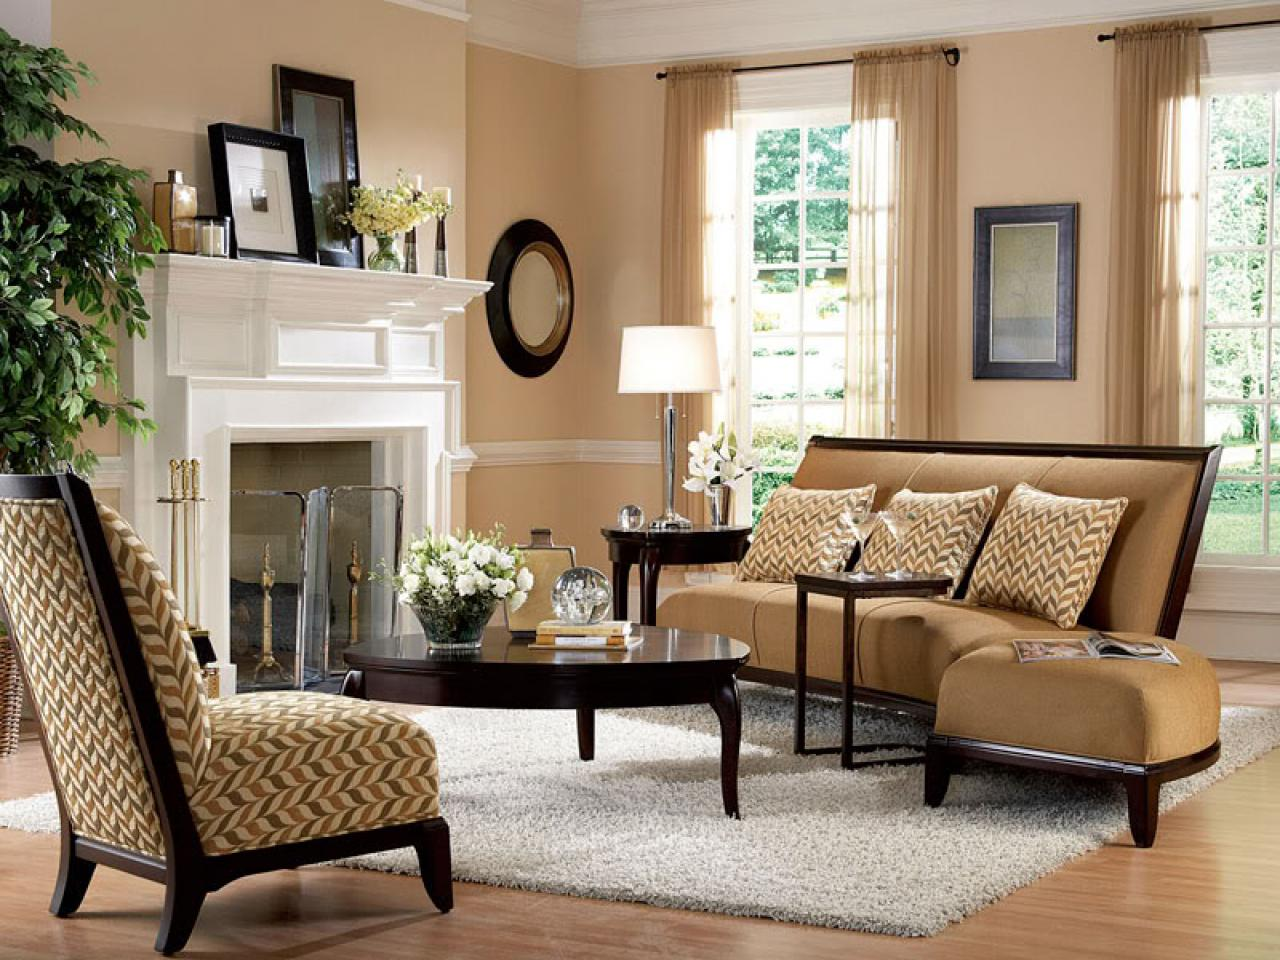 Image of: Comfortable Living Room Furniture